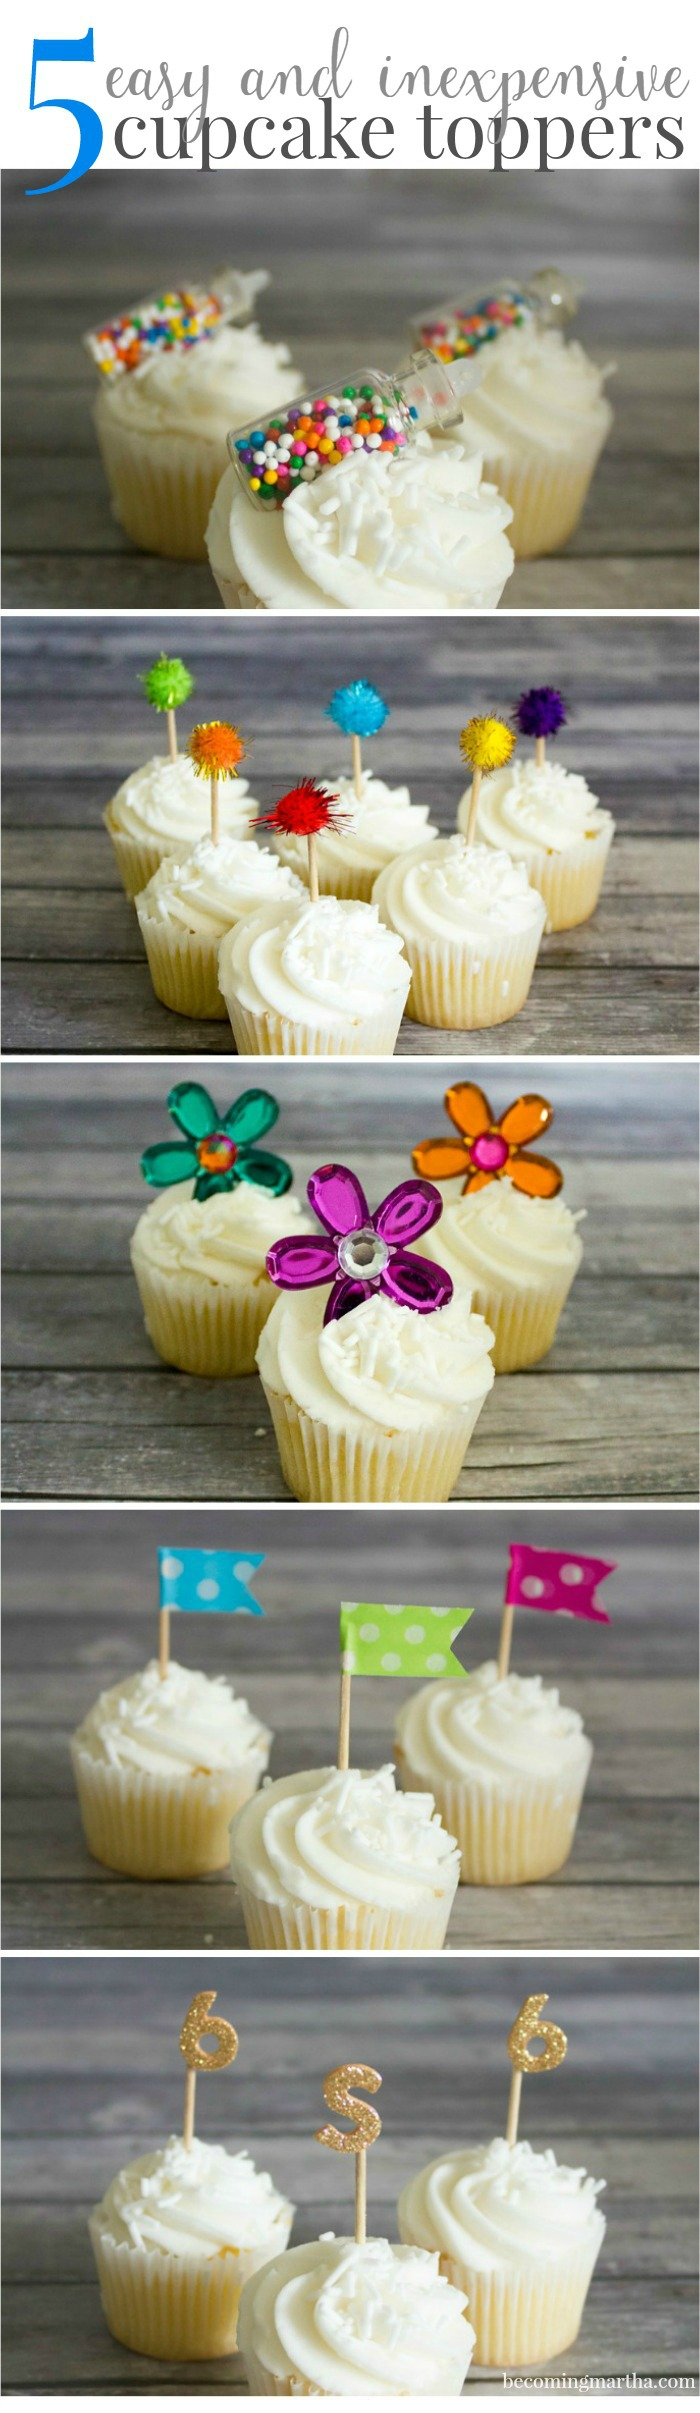 cupcake-toppers-collage